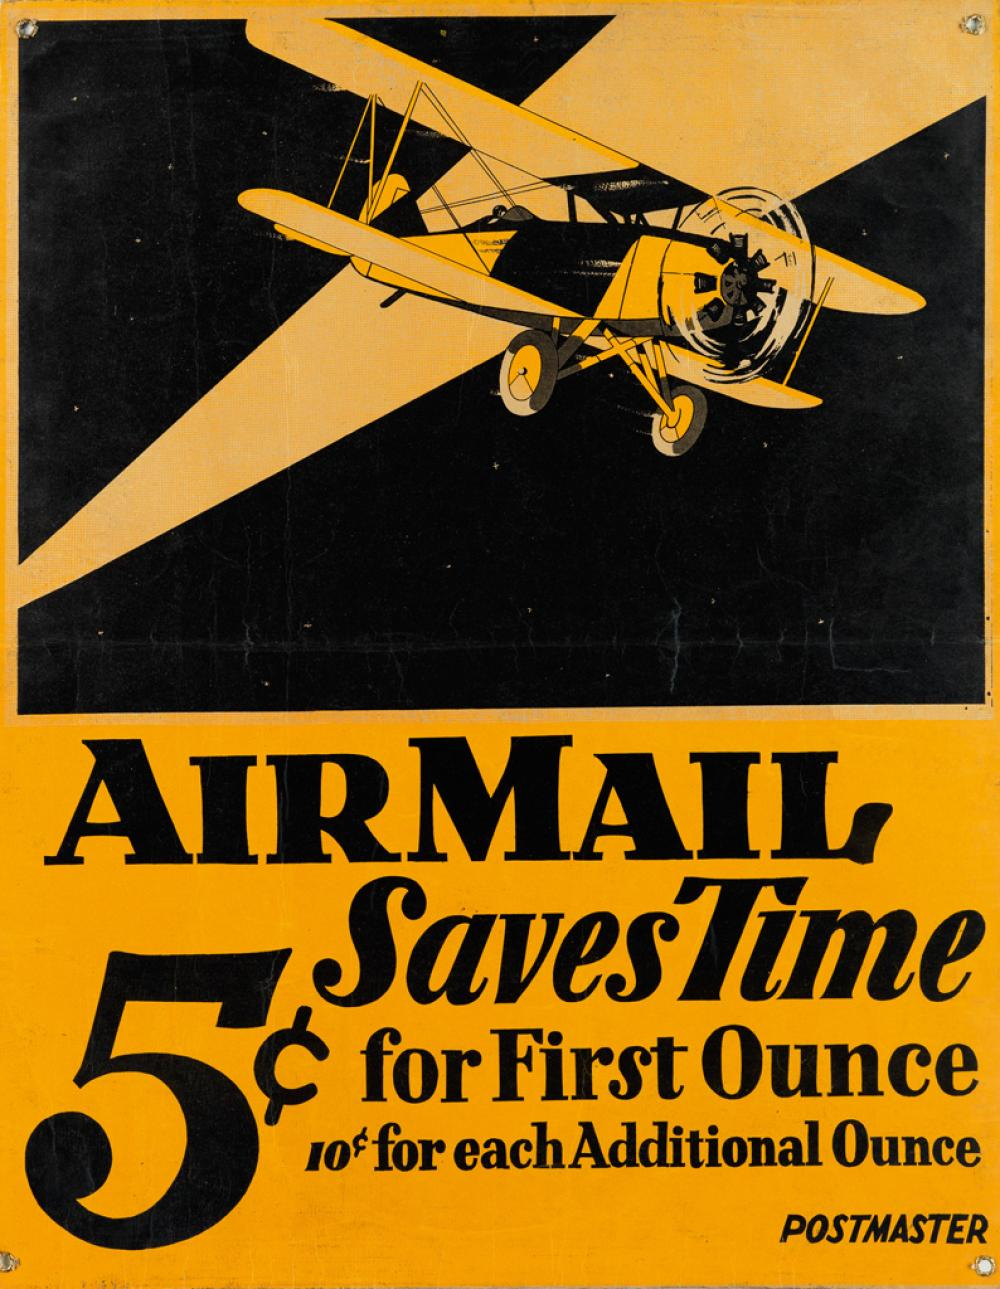 DESIGNER UNKNOWN. AIR MAIL SAVES TIME. Circa 1926. 27x21 inches, 70x55 cm.